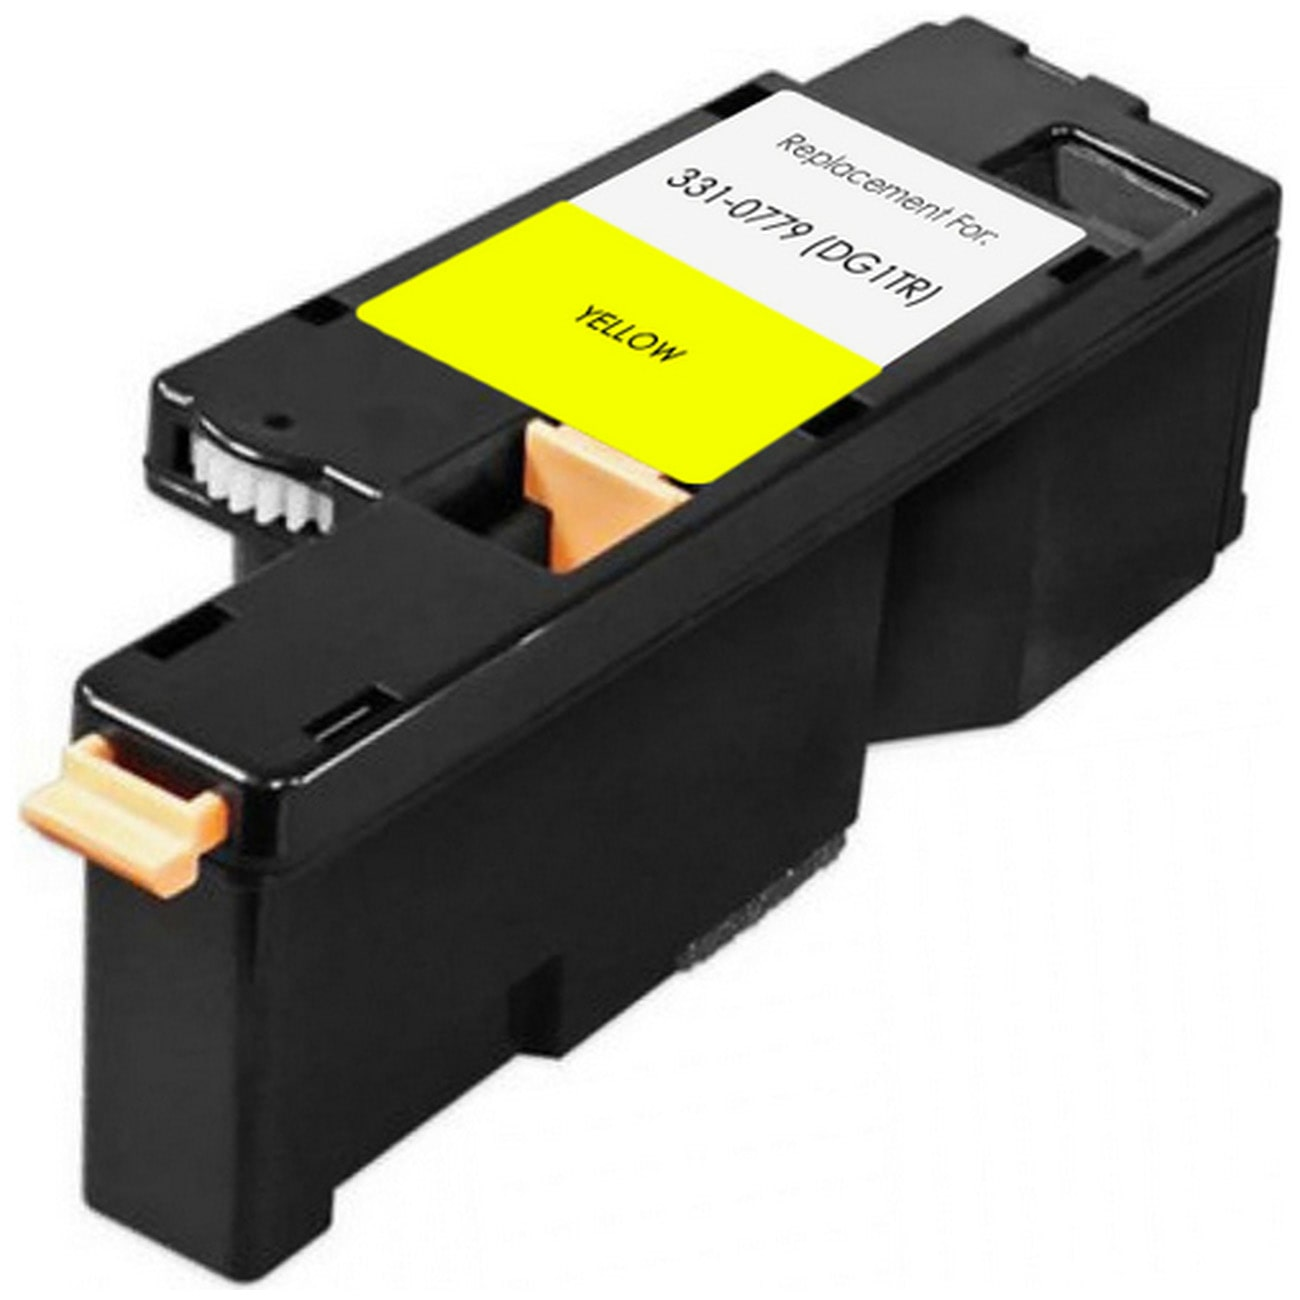 331-0779 Toner Cartridge - Dell New Compatible  (Yellow)